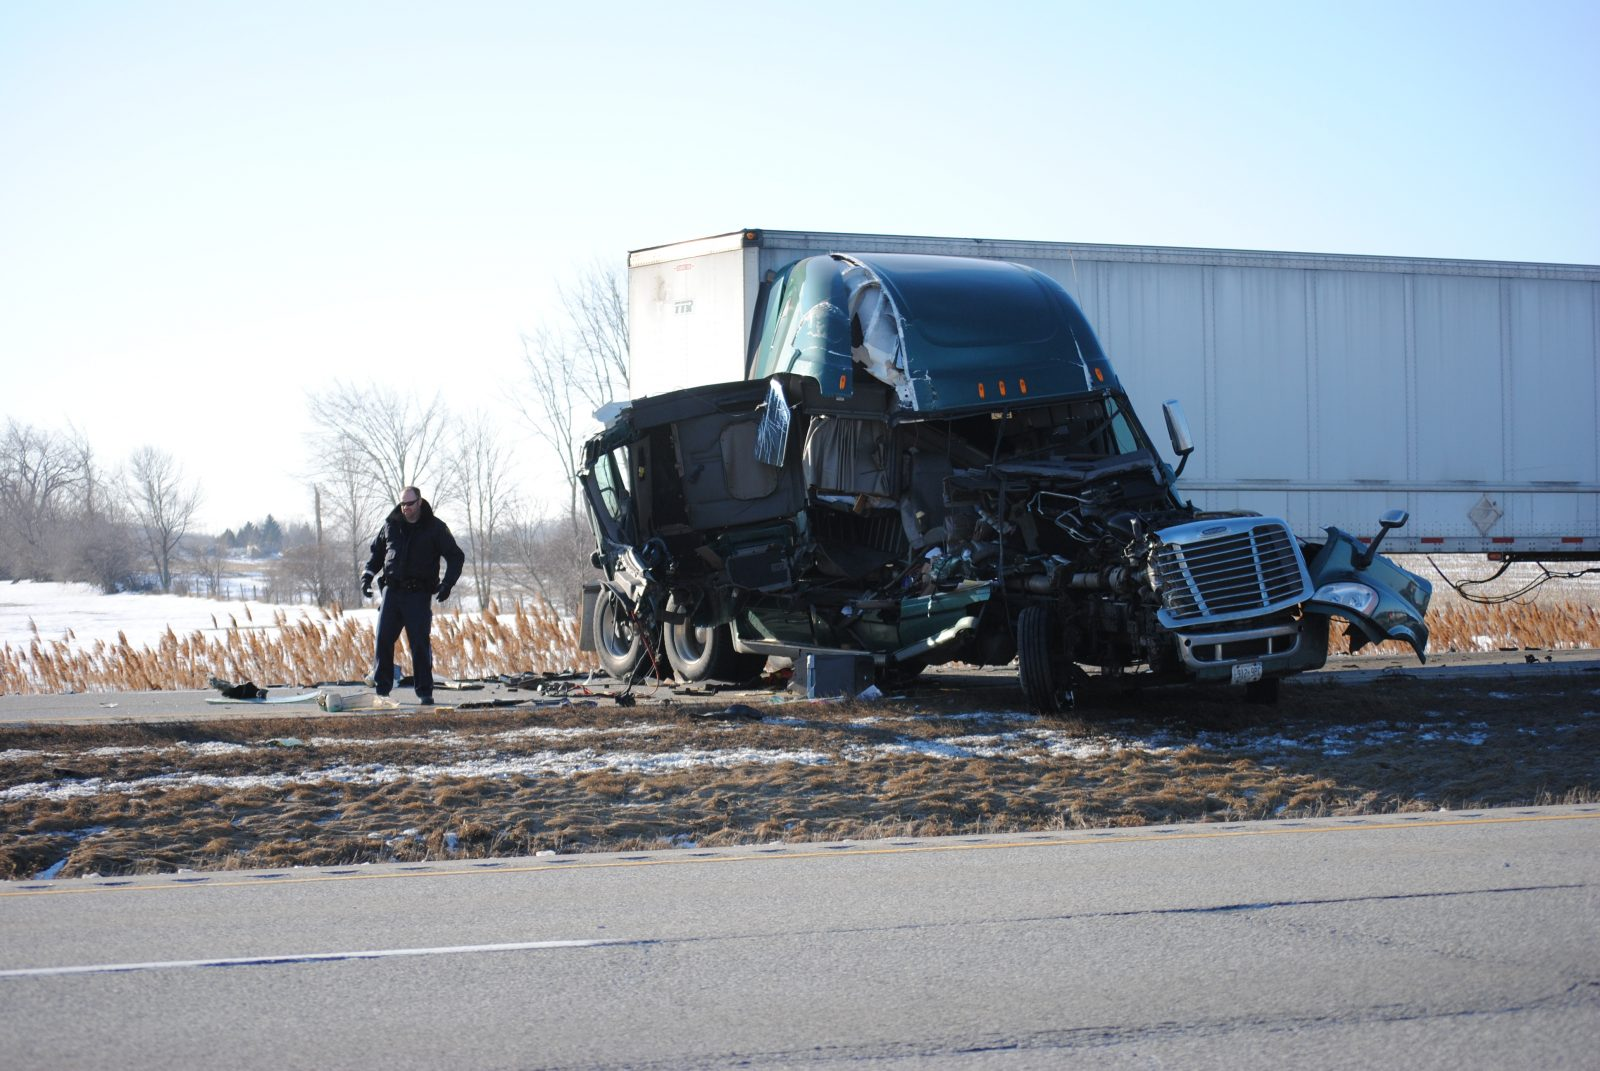 Accident snarls traffic on Highway 401